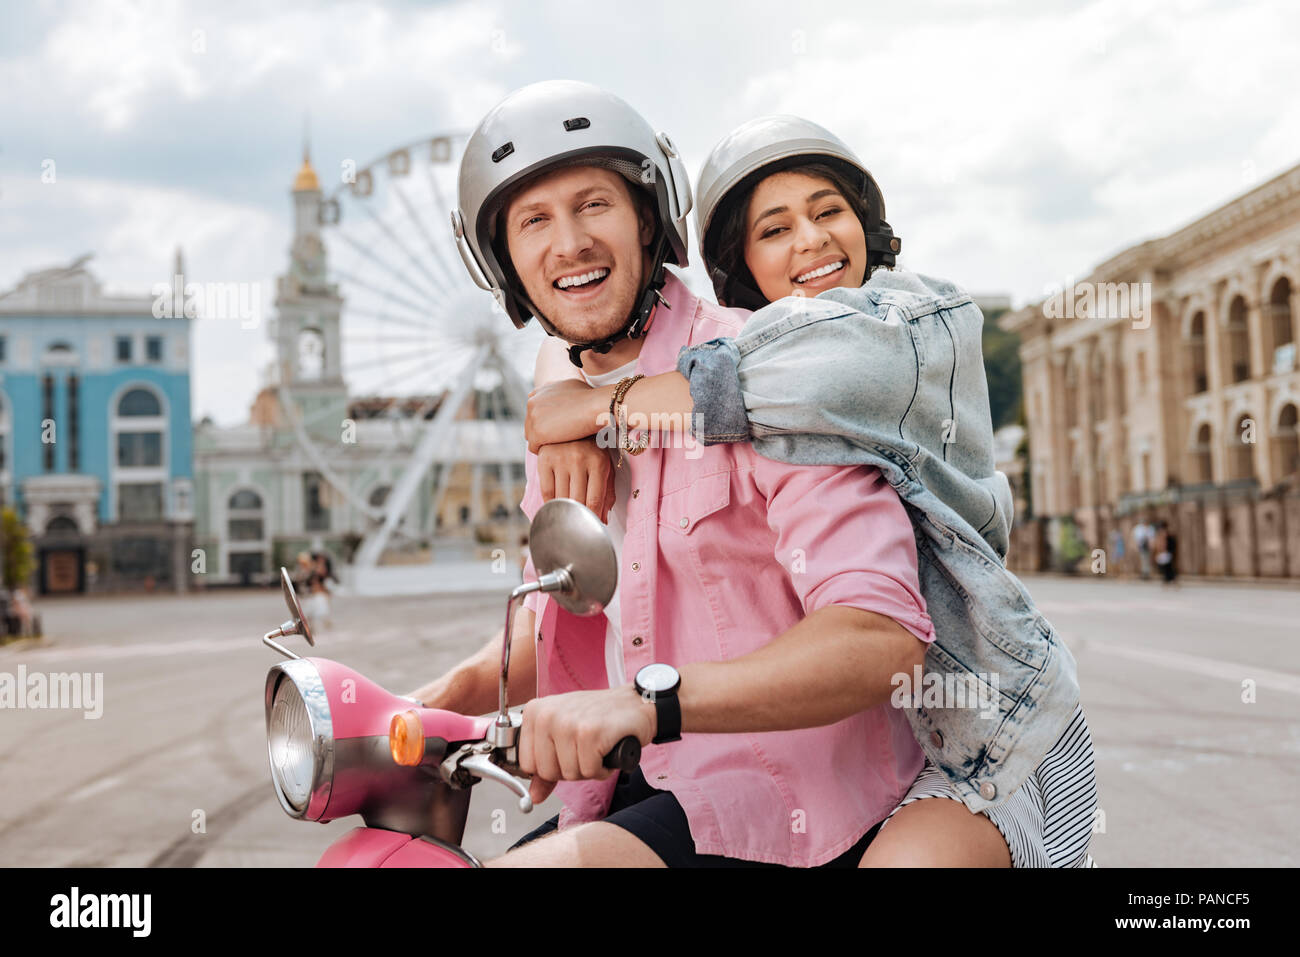 Loving jovial couple exploring city - Stock Image